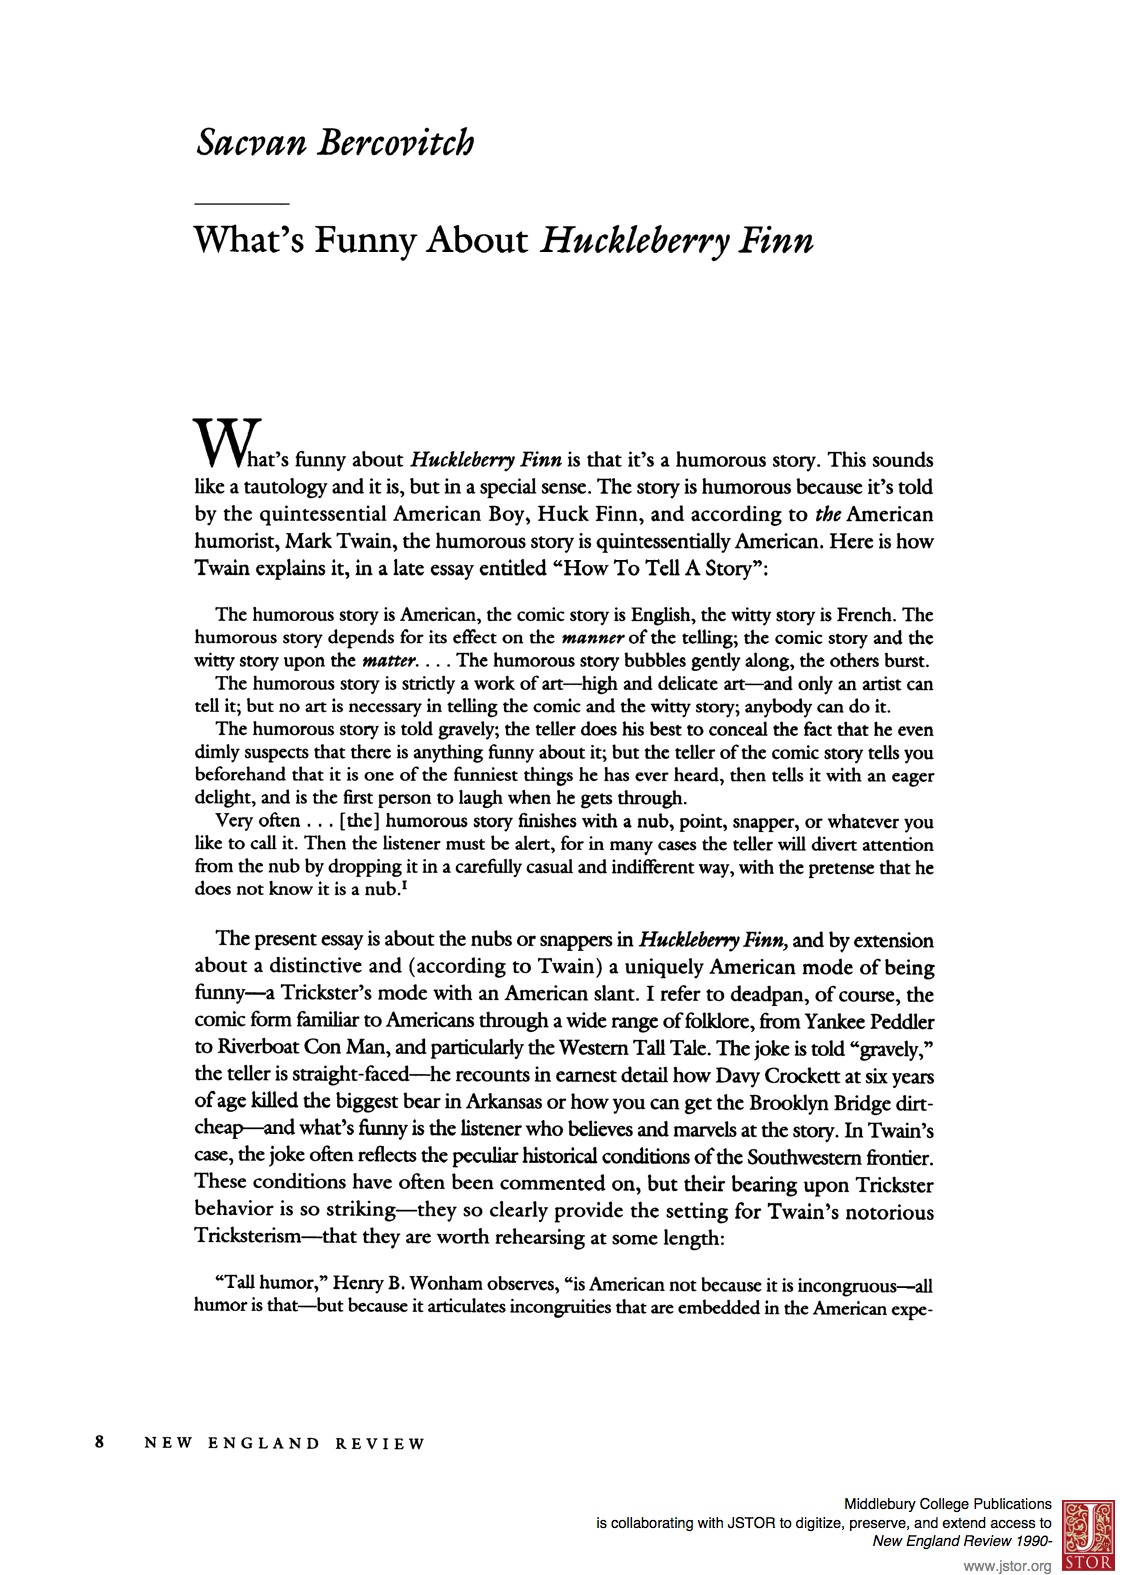 001 Huckleberry Finn Essay Example Phenomenal Morality Huck Discussion Questions Chapters 1-5 Full